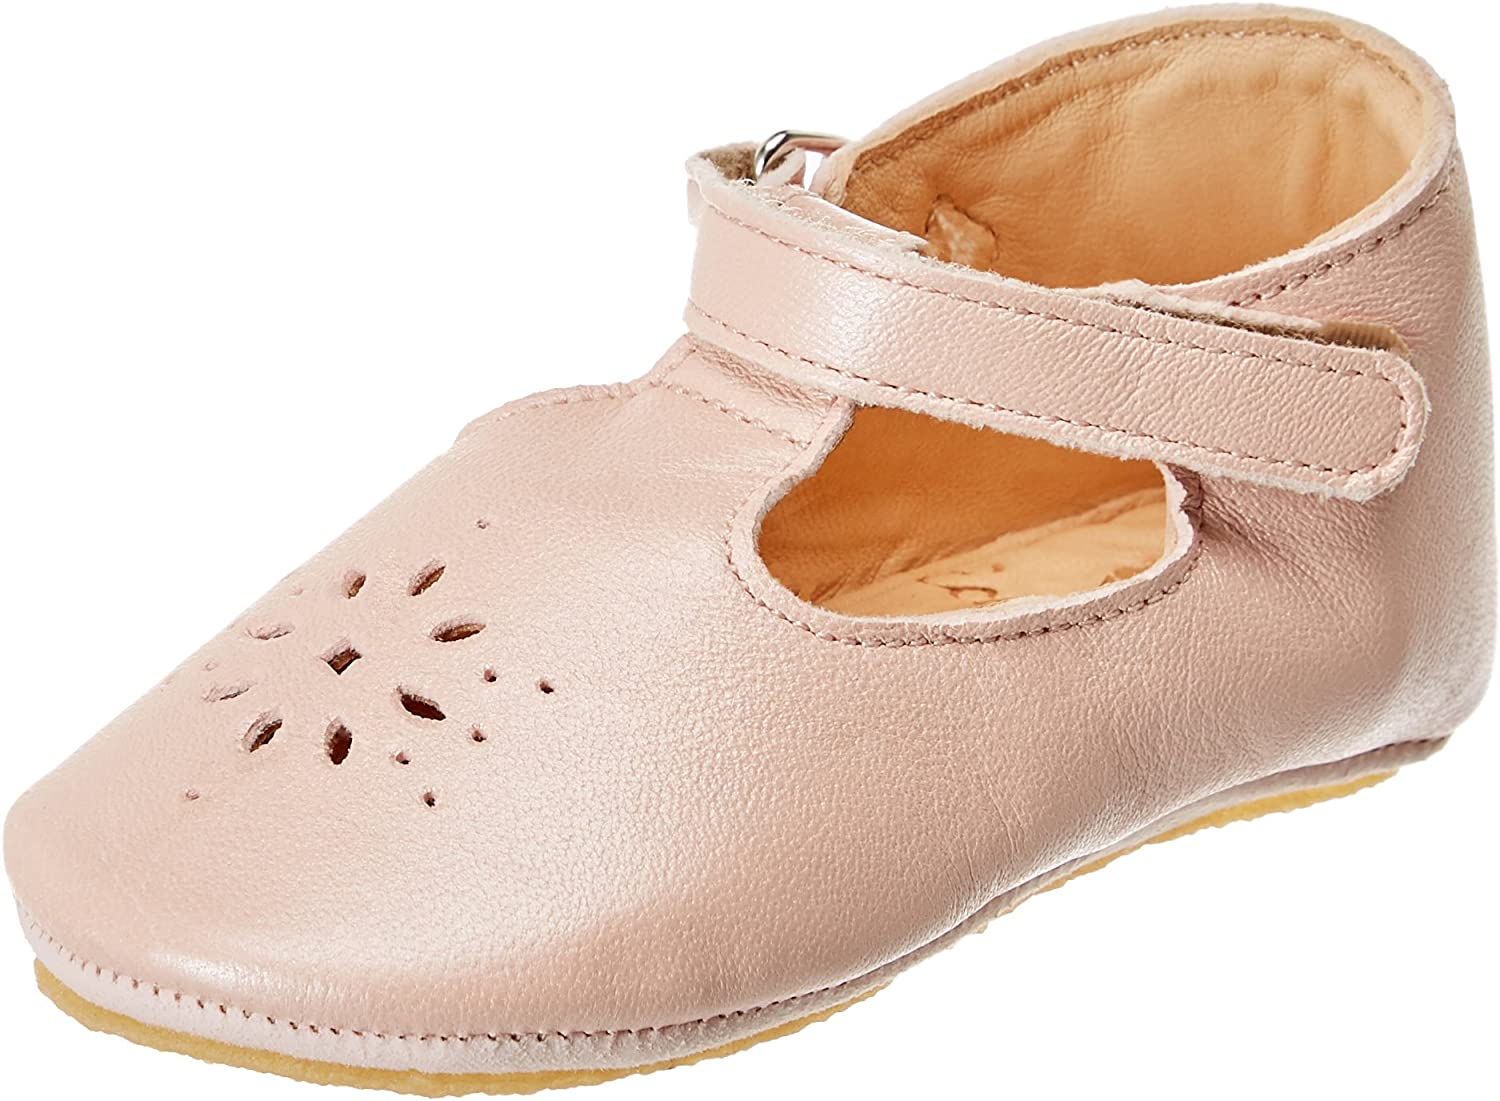 Chaussons b/éb/é Fille Easy Peasy Lillyp